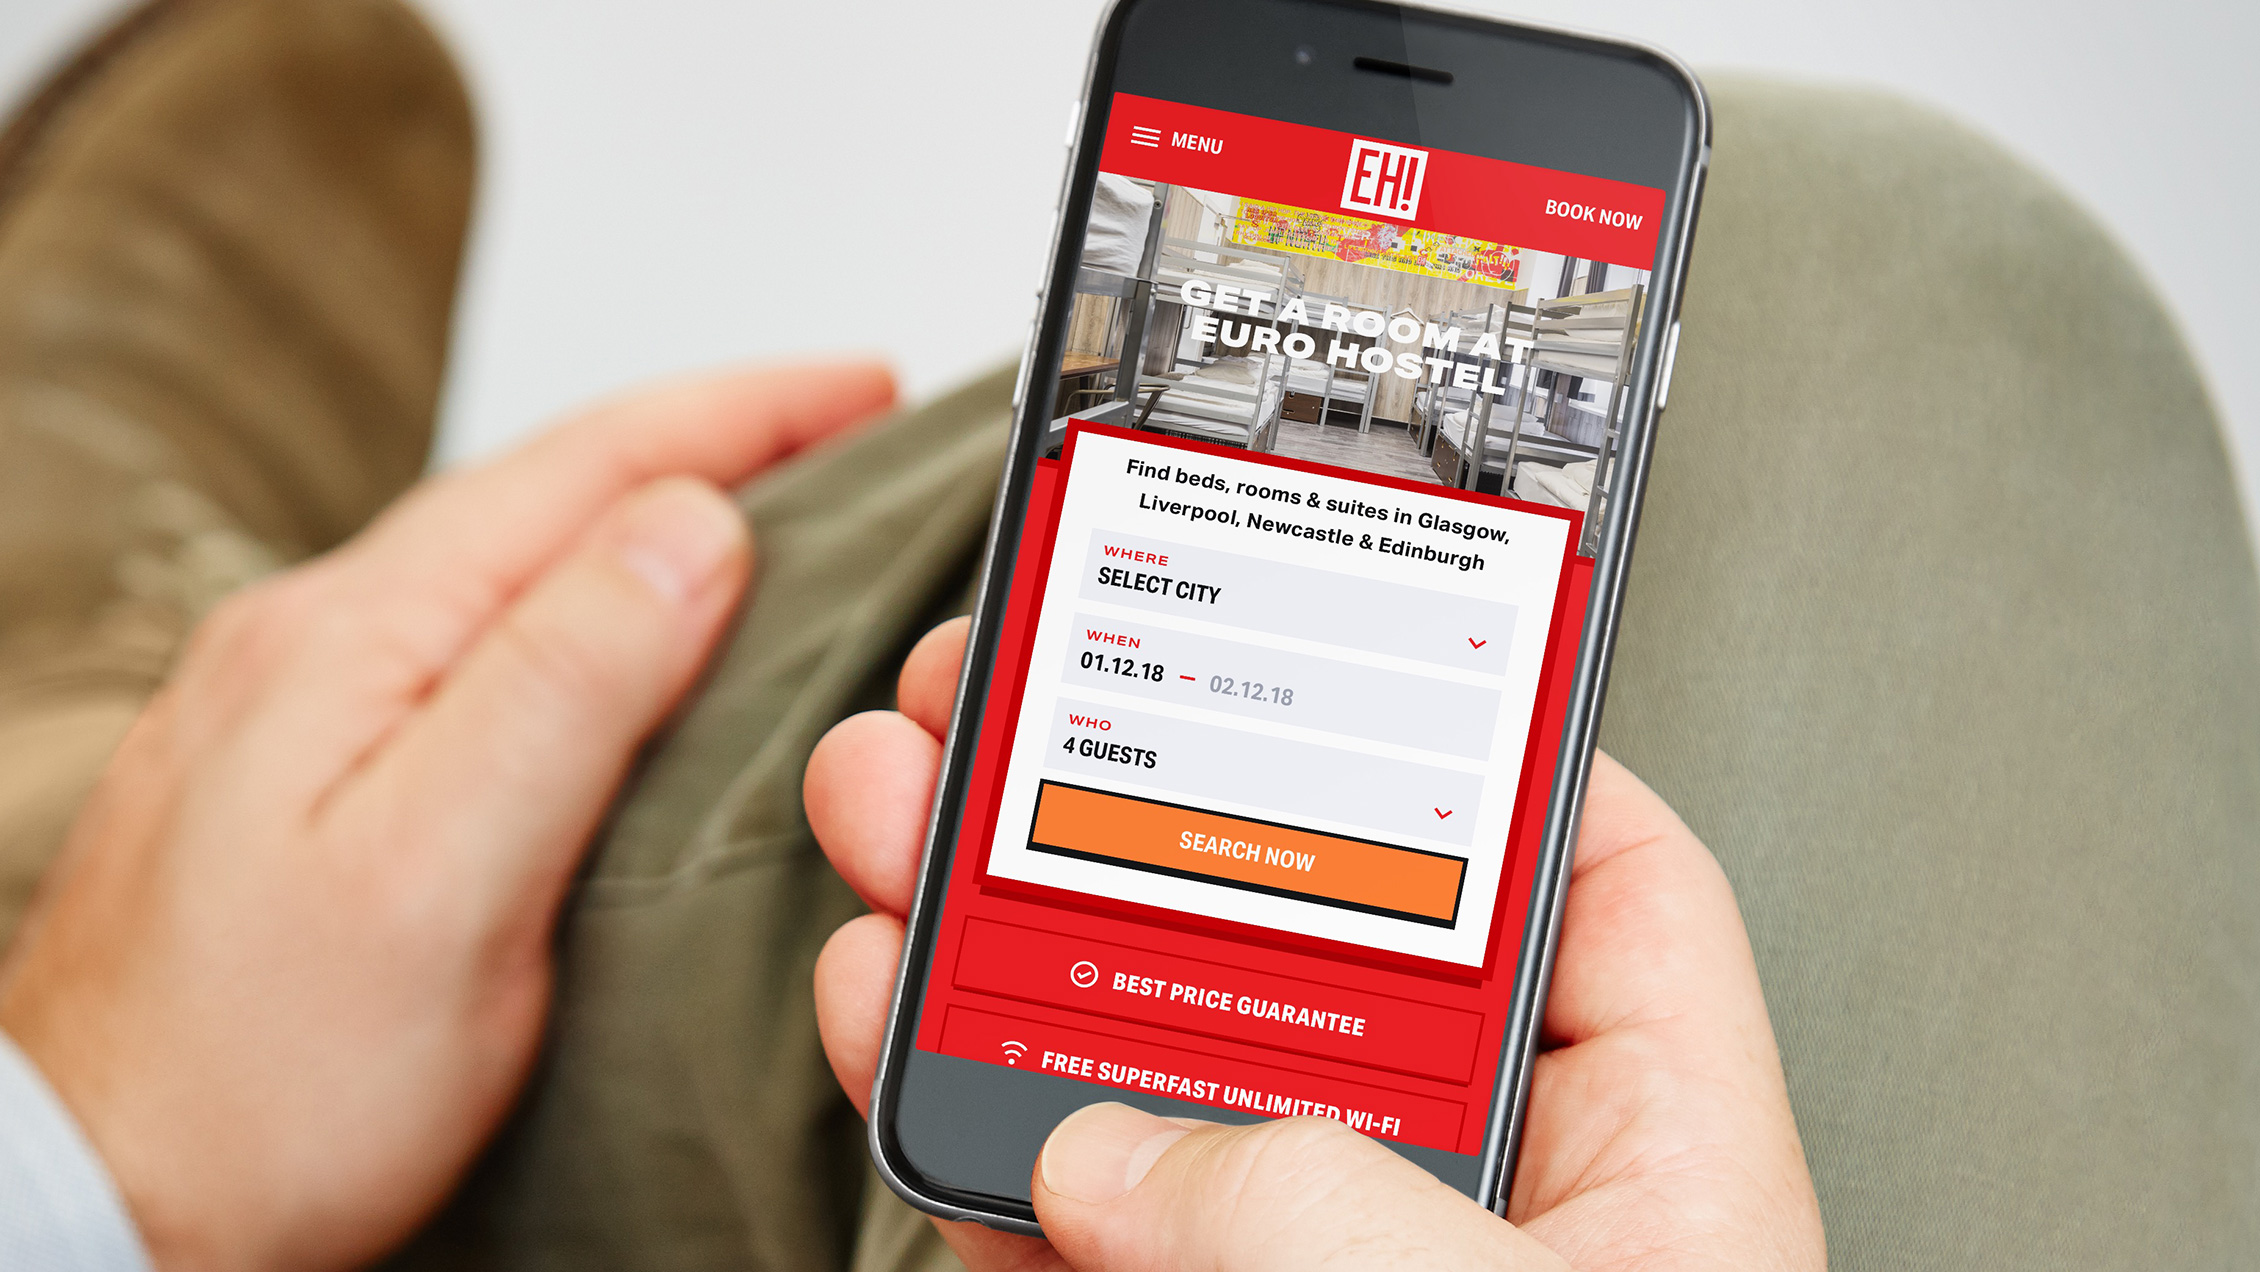 Euro Hostel target market using their booking optimised website on mobile